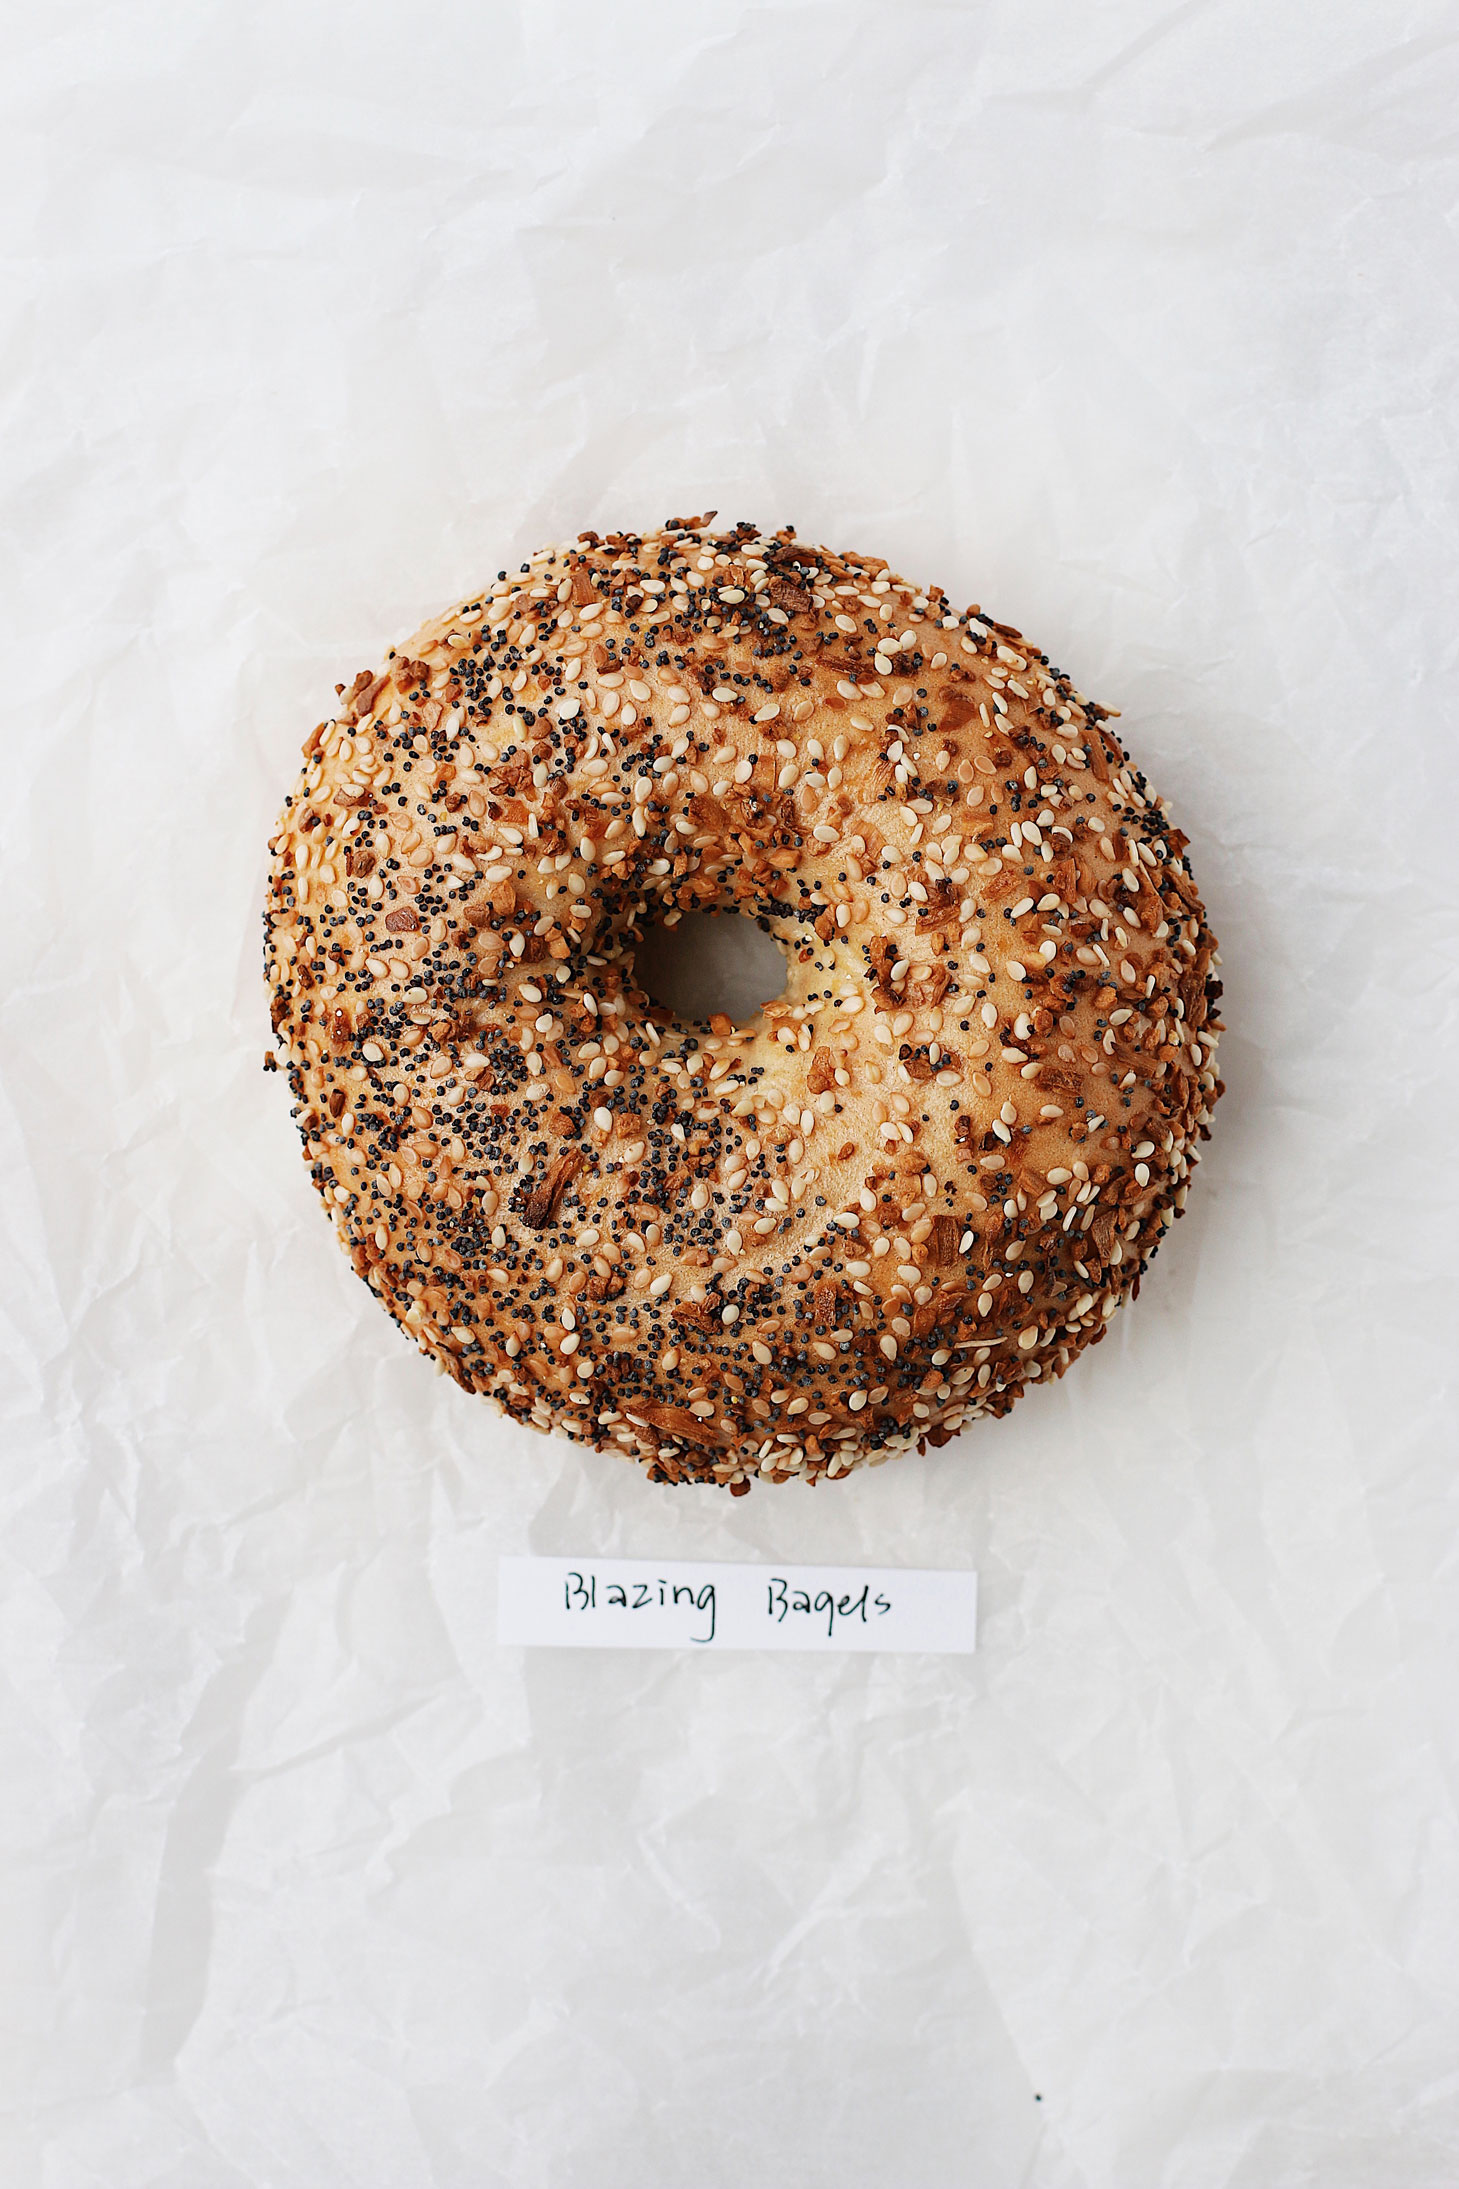 best-bagel-in-seattle-great-bagel-off-blazing-bagel-everything